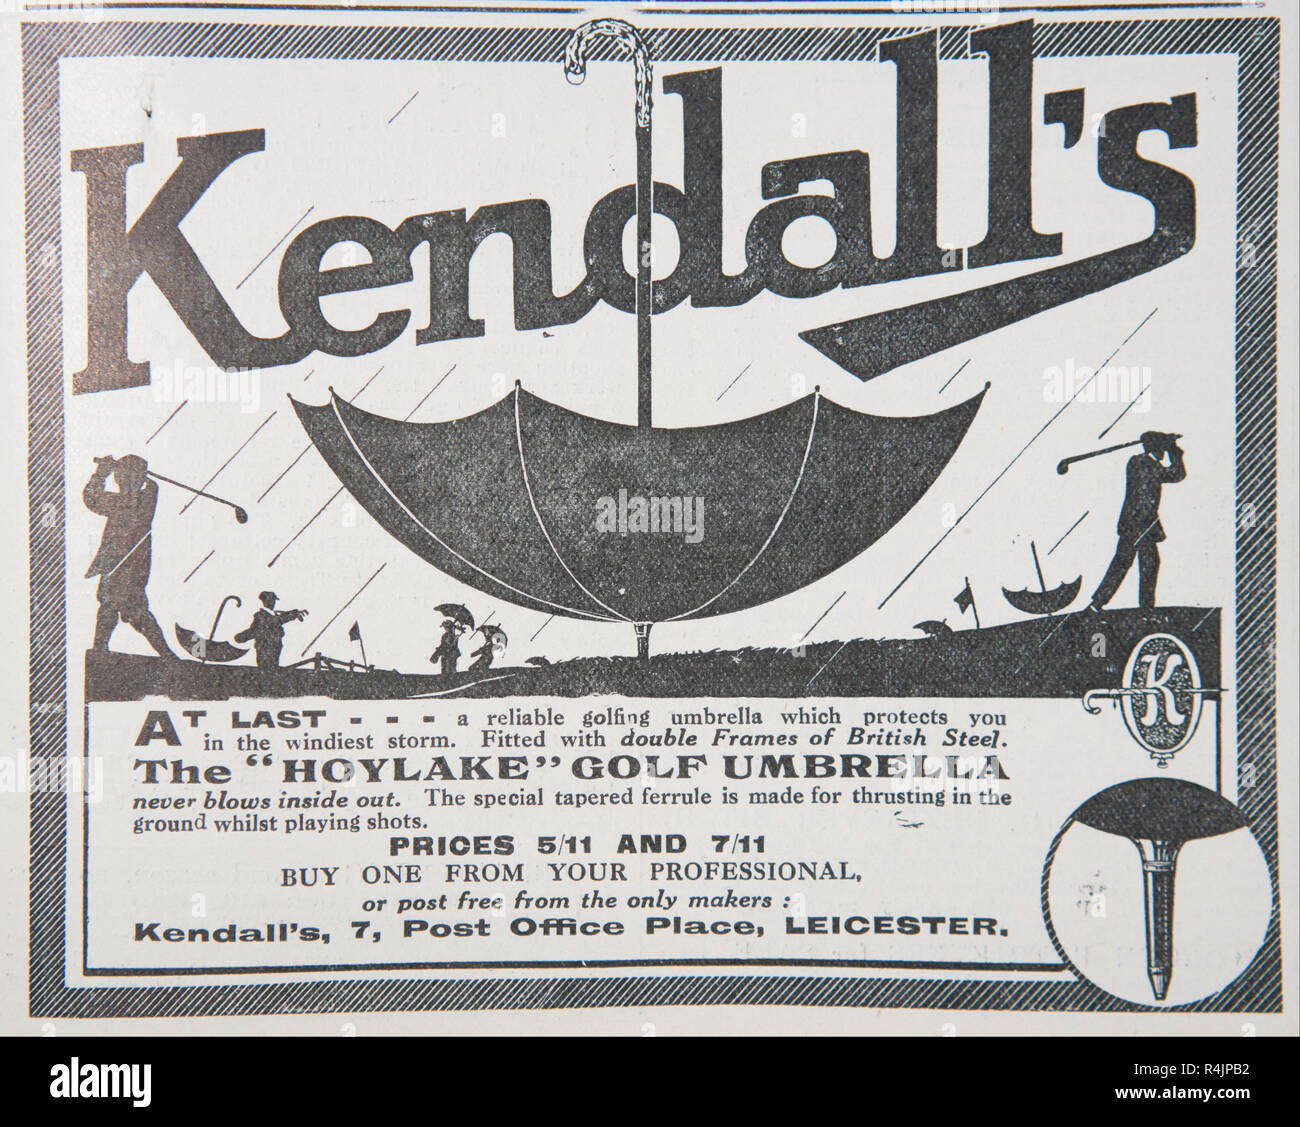 An old advert for Kendall's golf umbrella. From an old British magazine from the 1914-1918 period. - Stock Image